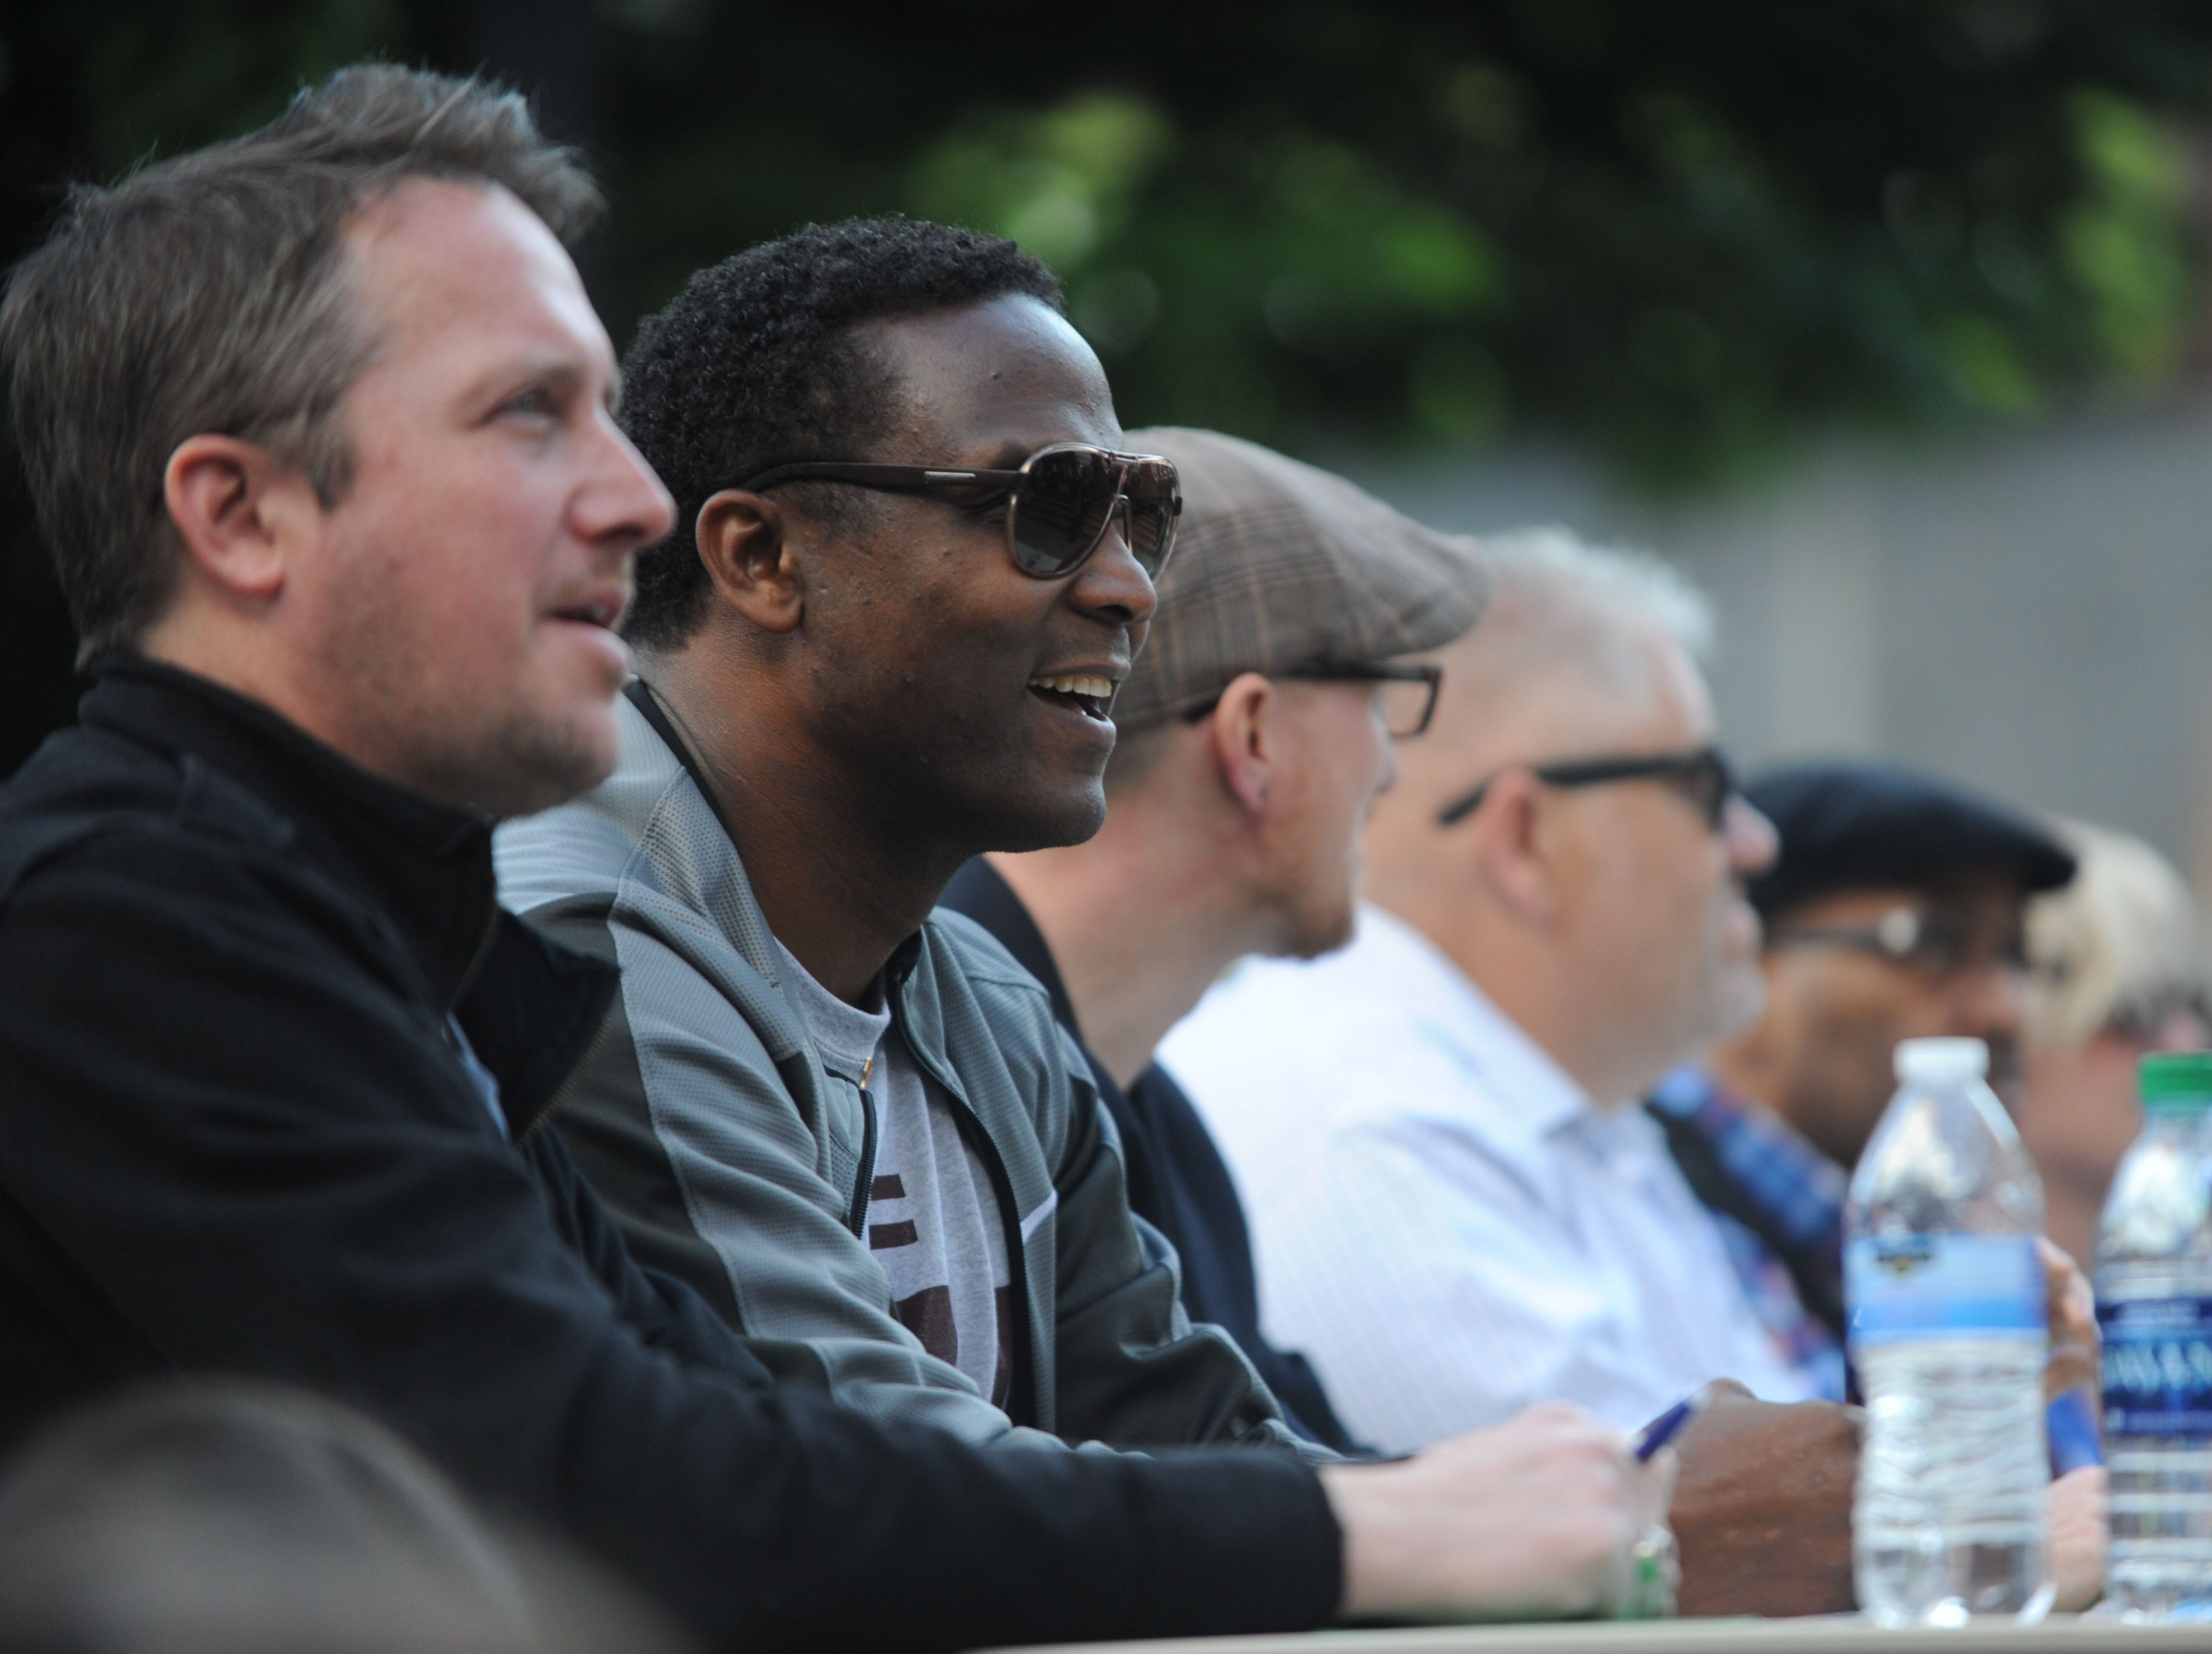 Former University of Tennessee quarterback Sterling Henton is one of the CTE Goes Live judges and watches the performance in Market Square on Friday, May 6, 2016.